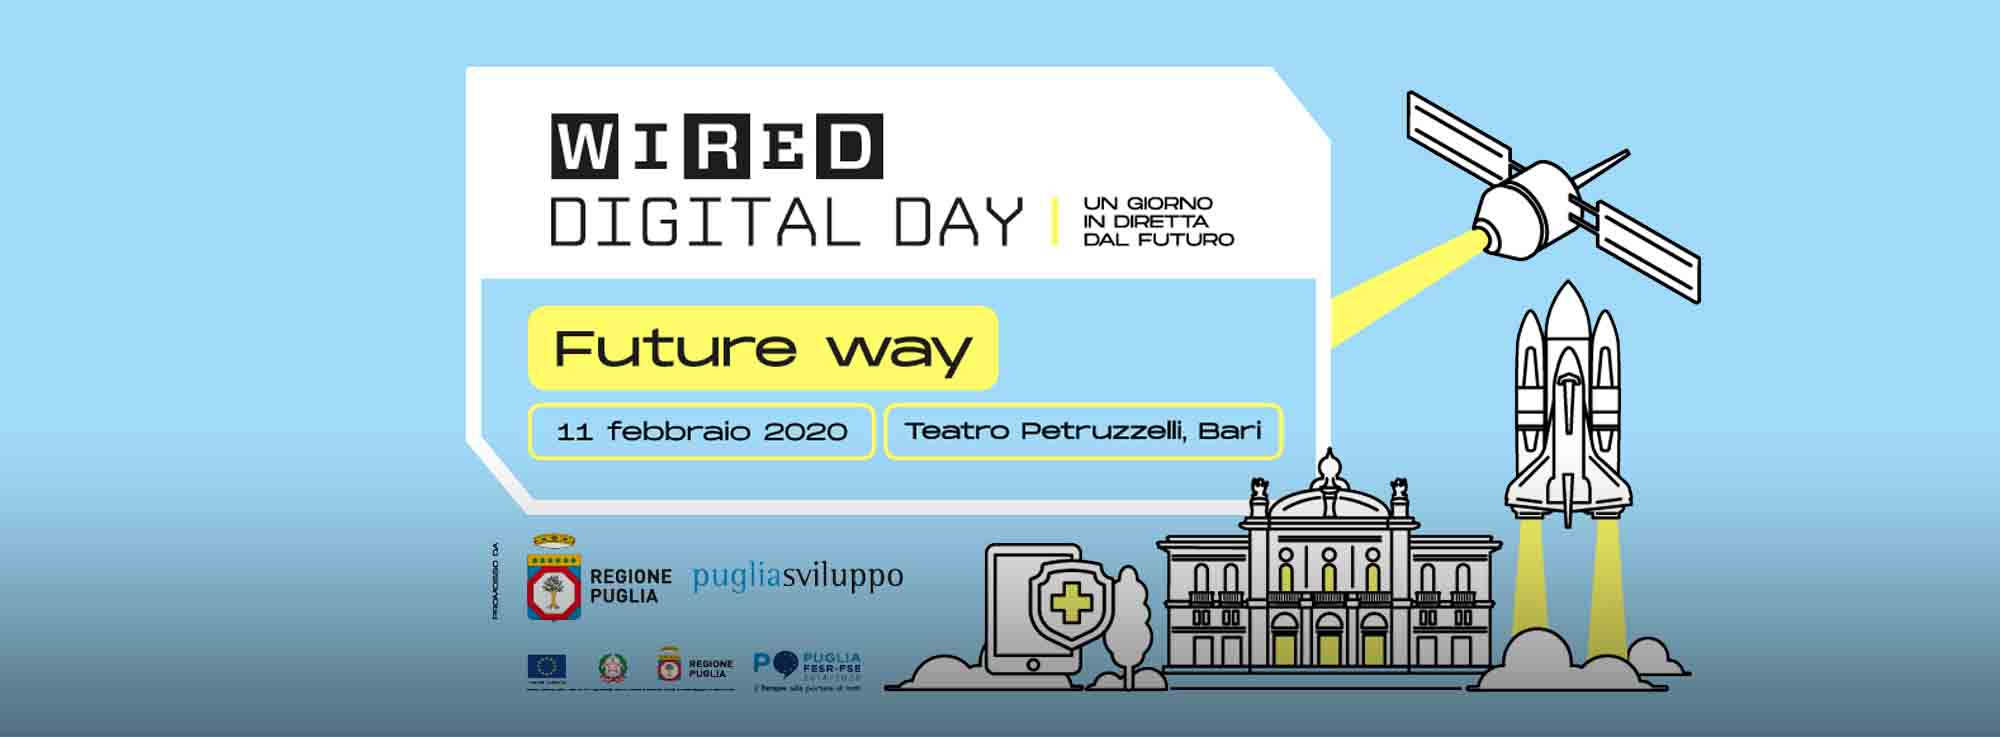 Bari: Wired Digital Day